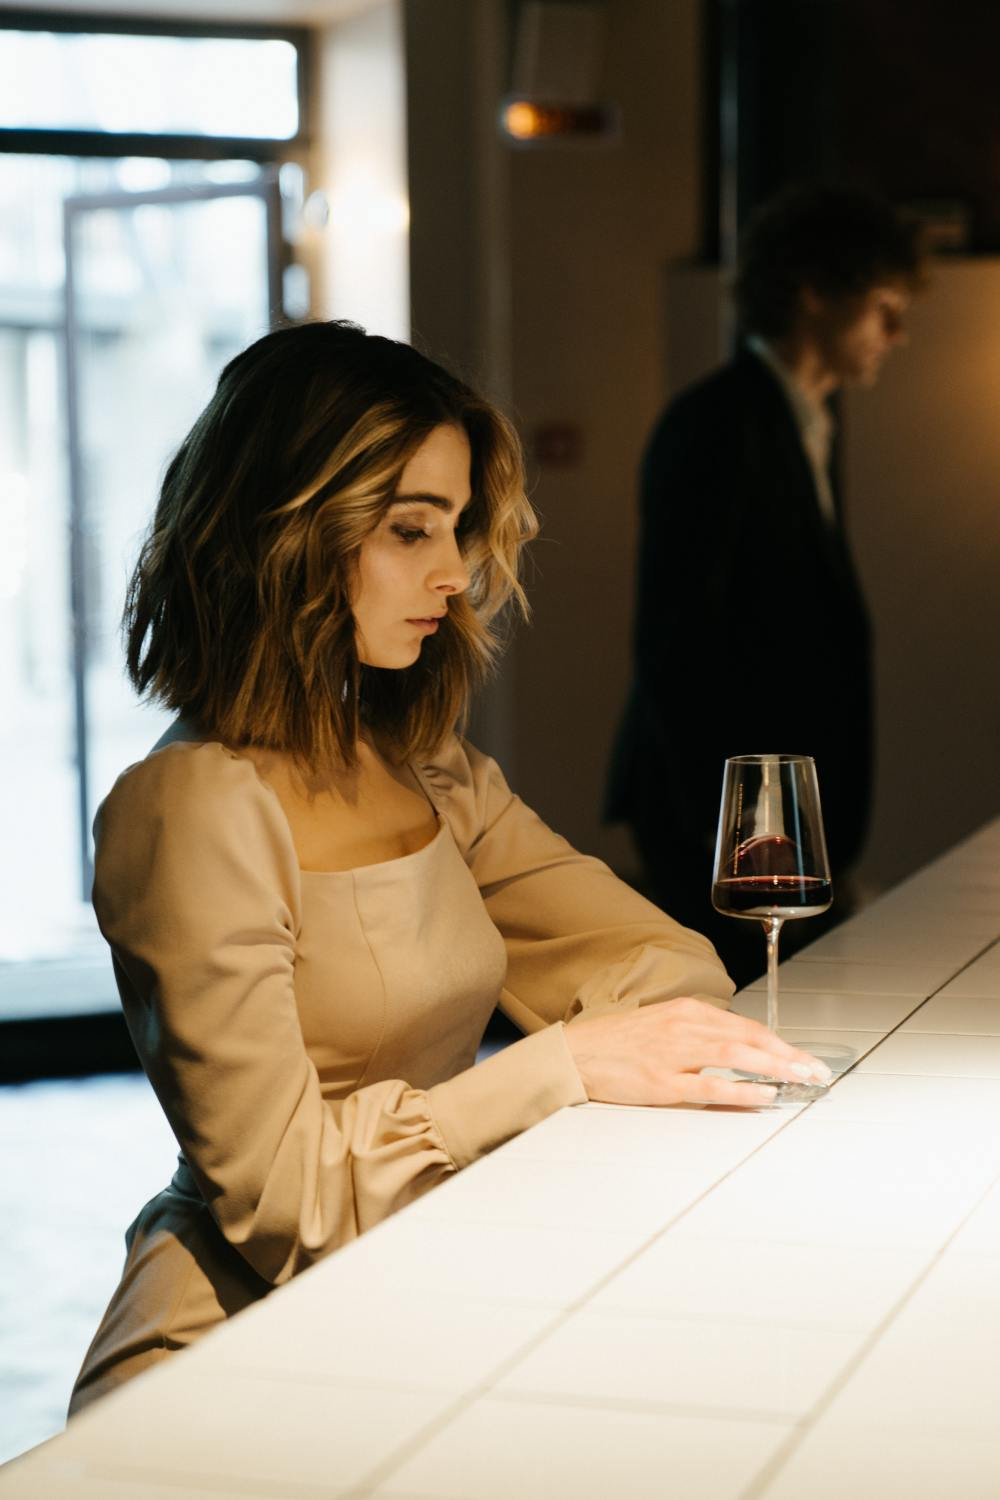 what not to do: 7 regrettable post-breakup mistakes you should avoid